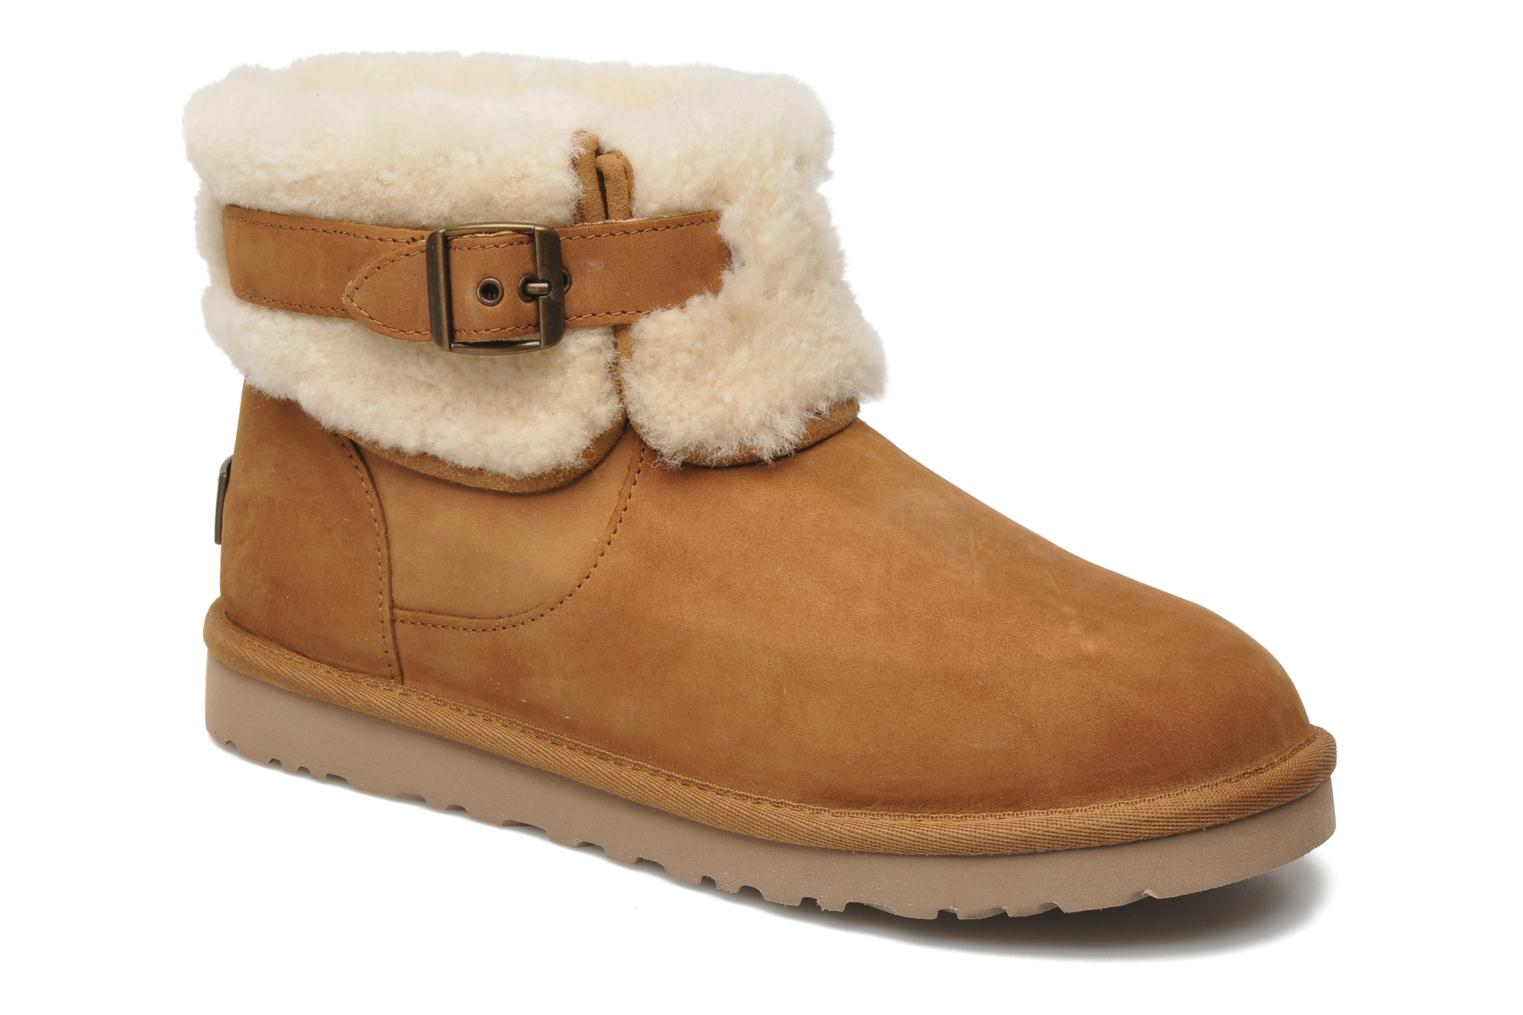 7f6e8a385e1 Department Stores That Sell Uggs Boots - cheap watches mgc-gas.com